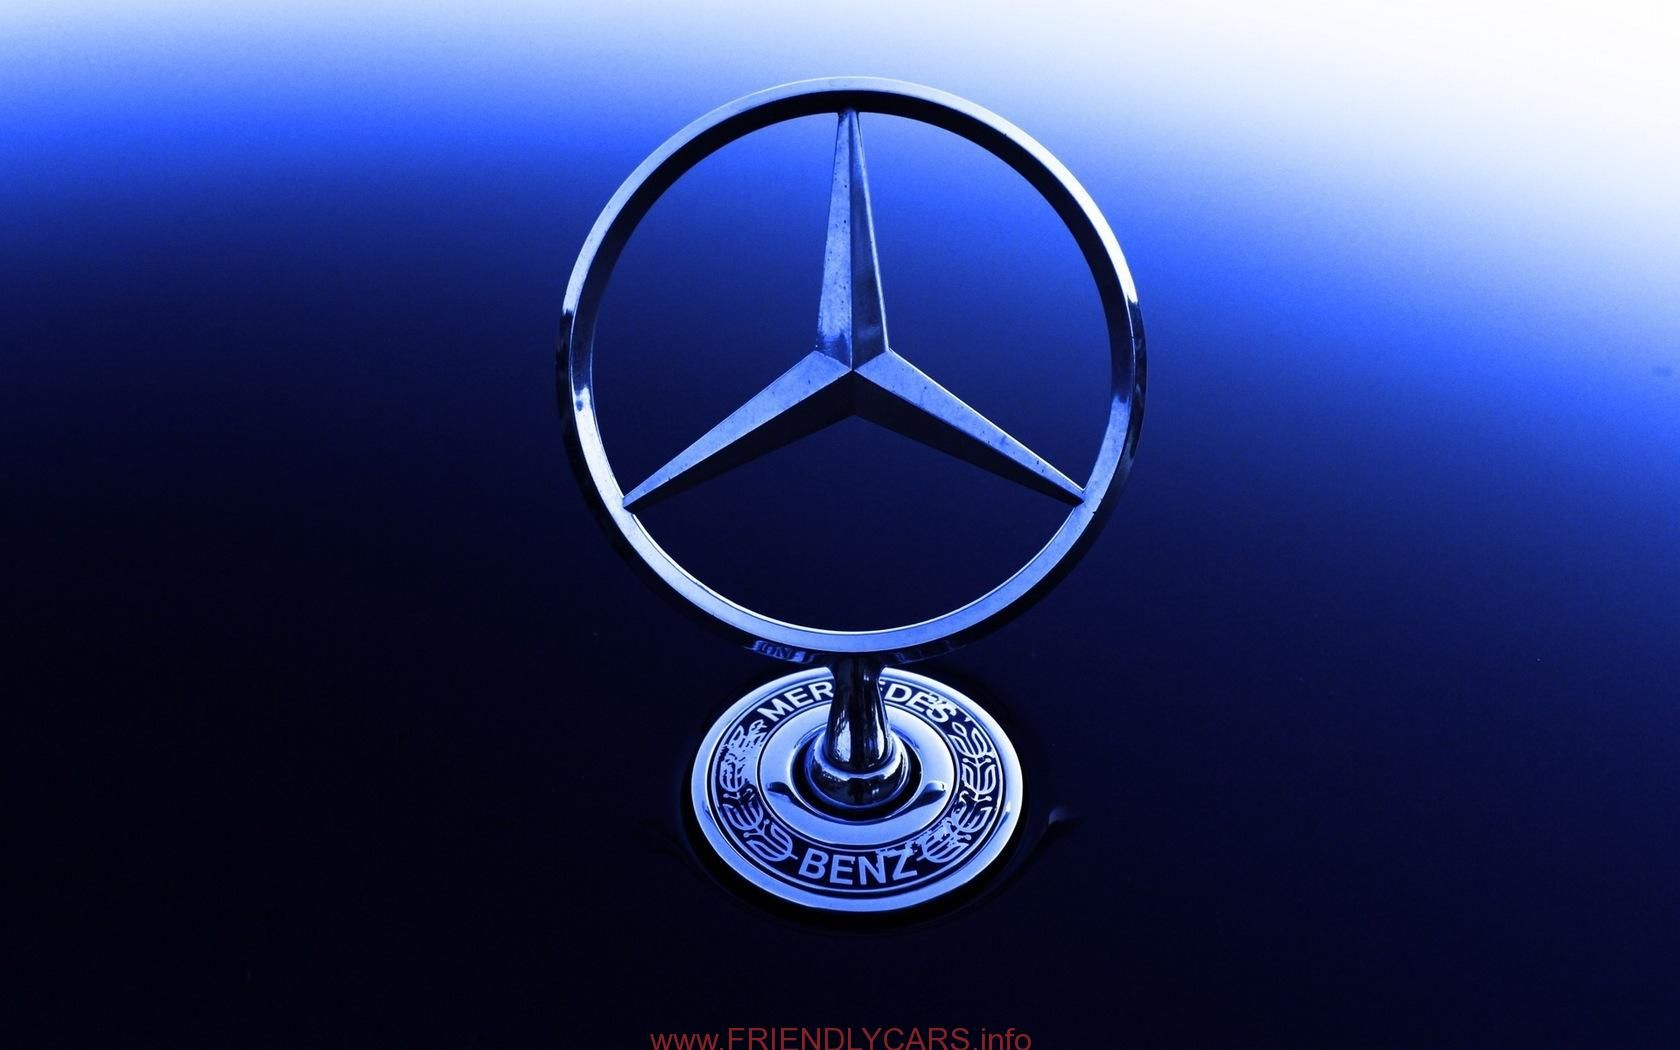 Cool mercedes logo wallpaper iphone car images hd roundup 40 cool mercedes logo wallpaper iphone car images hd roundup 40 amazing mercedes benz hd wallpapers crispme voltagebd Image collections